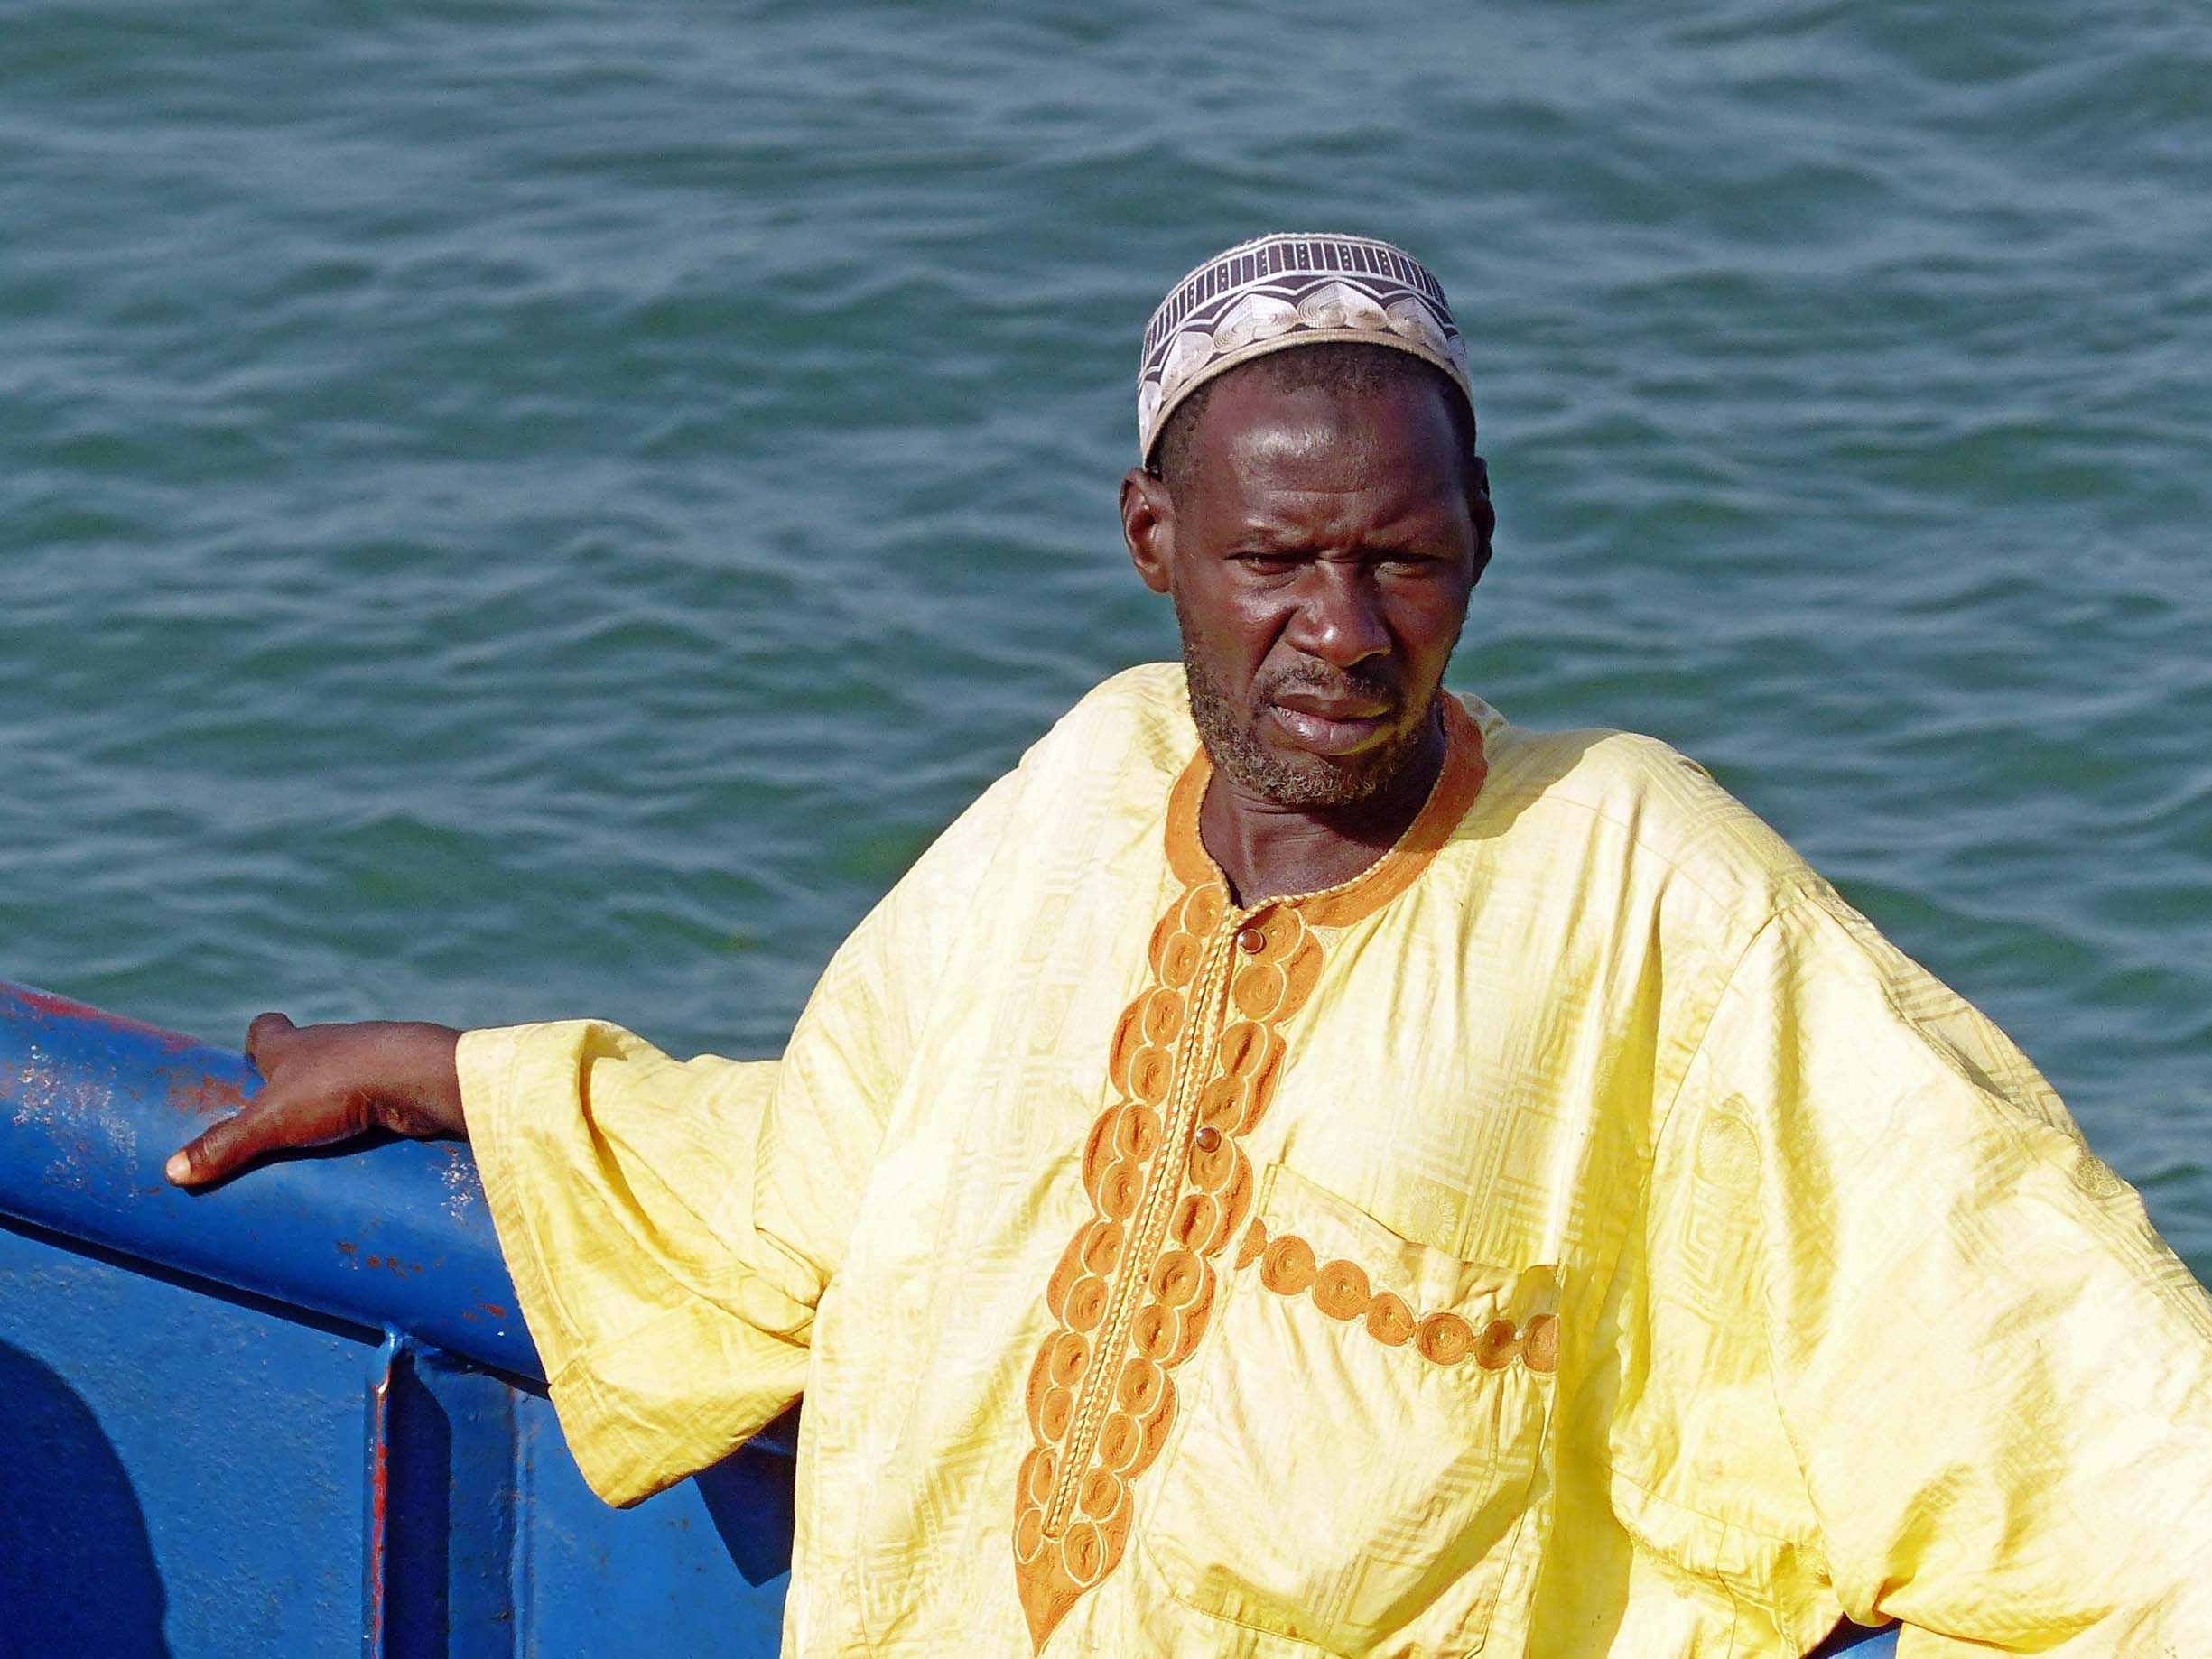 Man in African dress on a boat